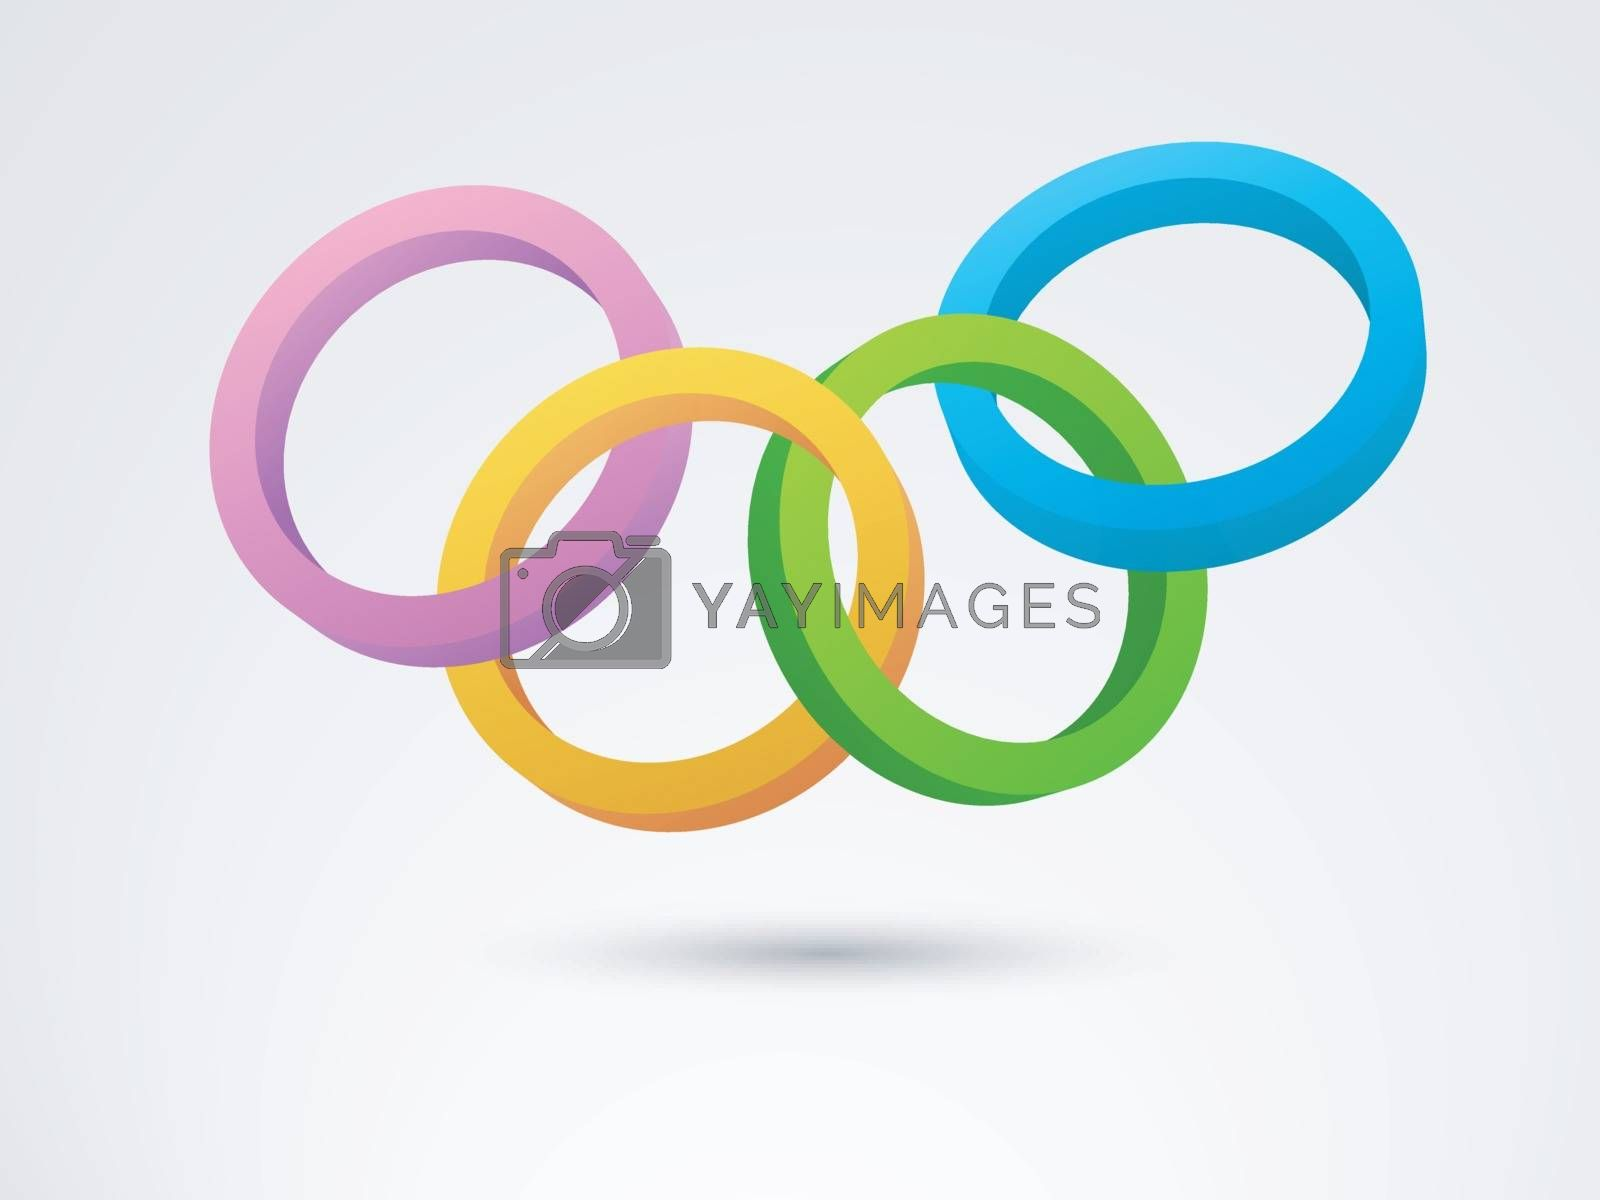 Abstract geometric background with colorful 3D circle and rings.